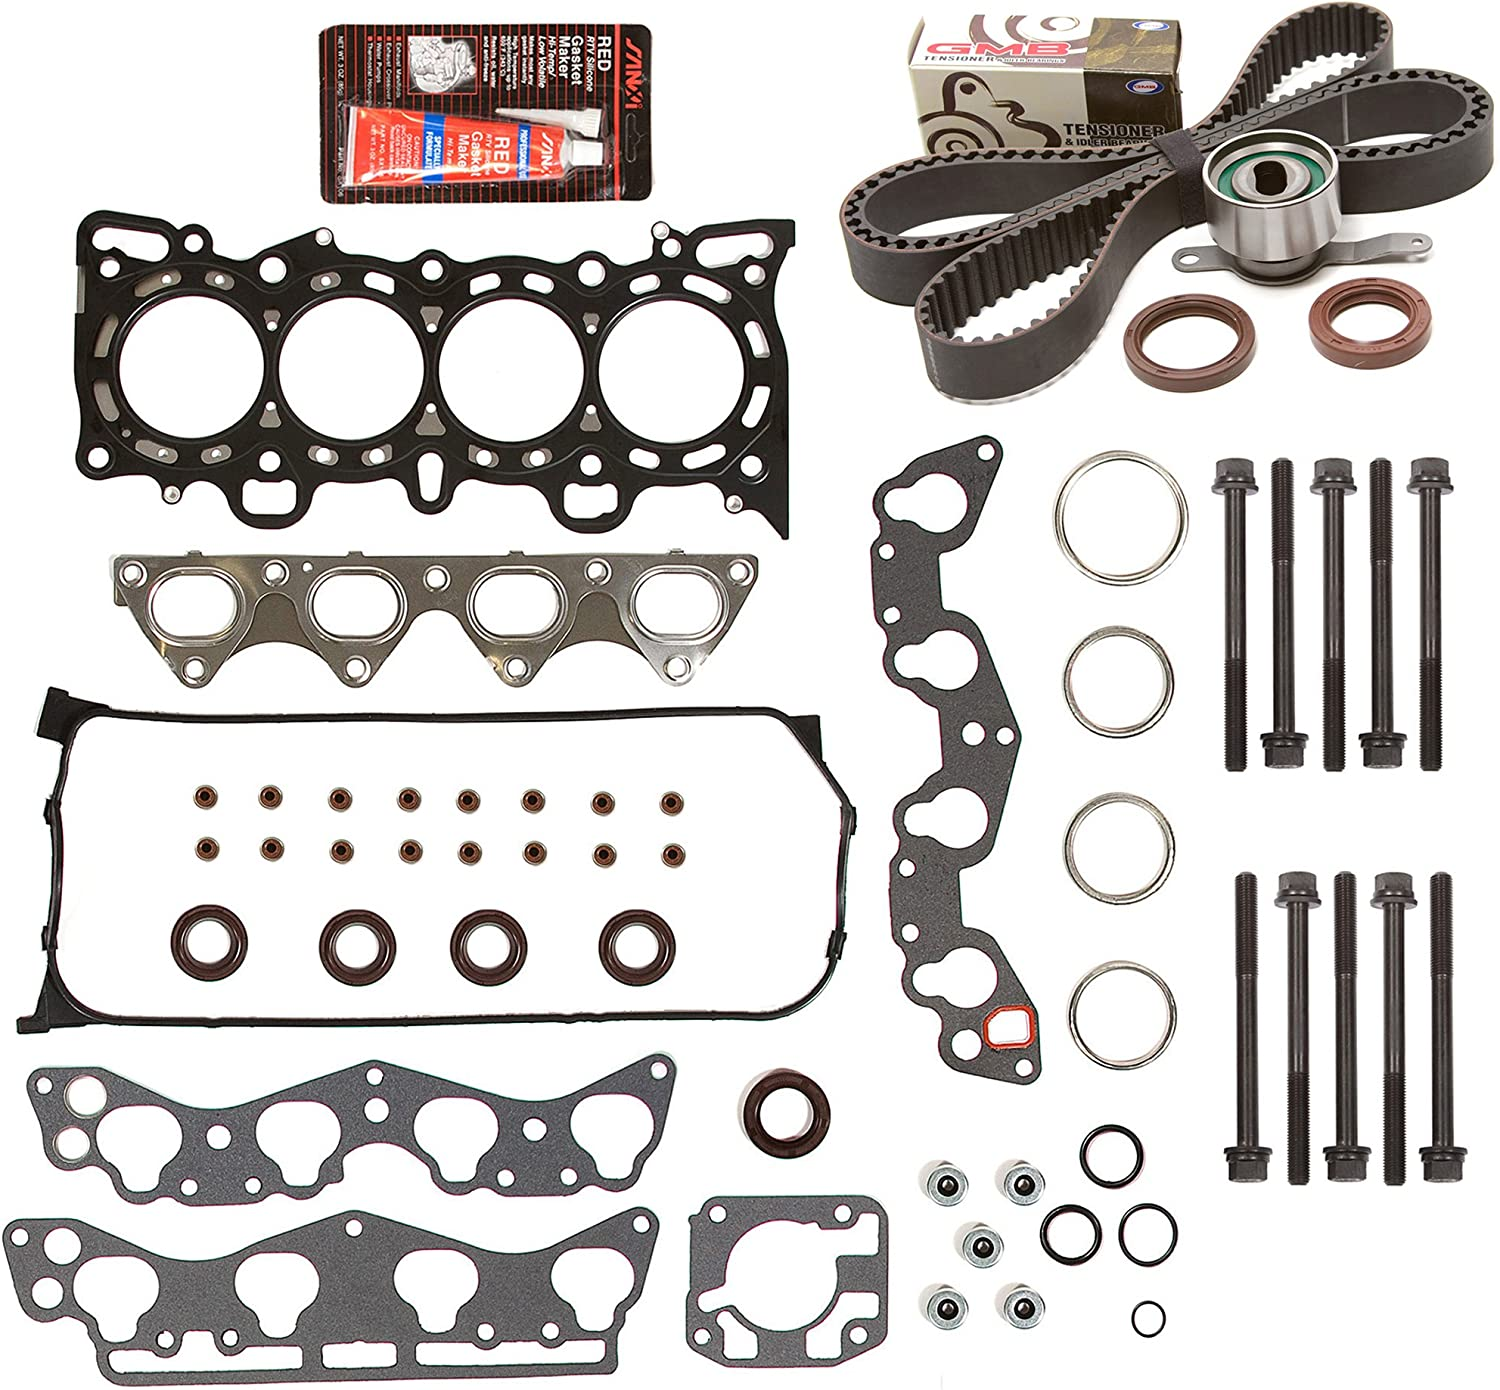 Evergreen HSHBTBK4029 Head Gasket Set Head Bolts Timing Belt Kit Fits 96-00 Honda 1.6 D16Y5 D16Y7 D16Y8